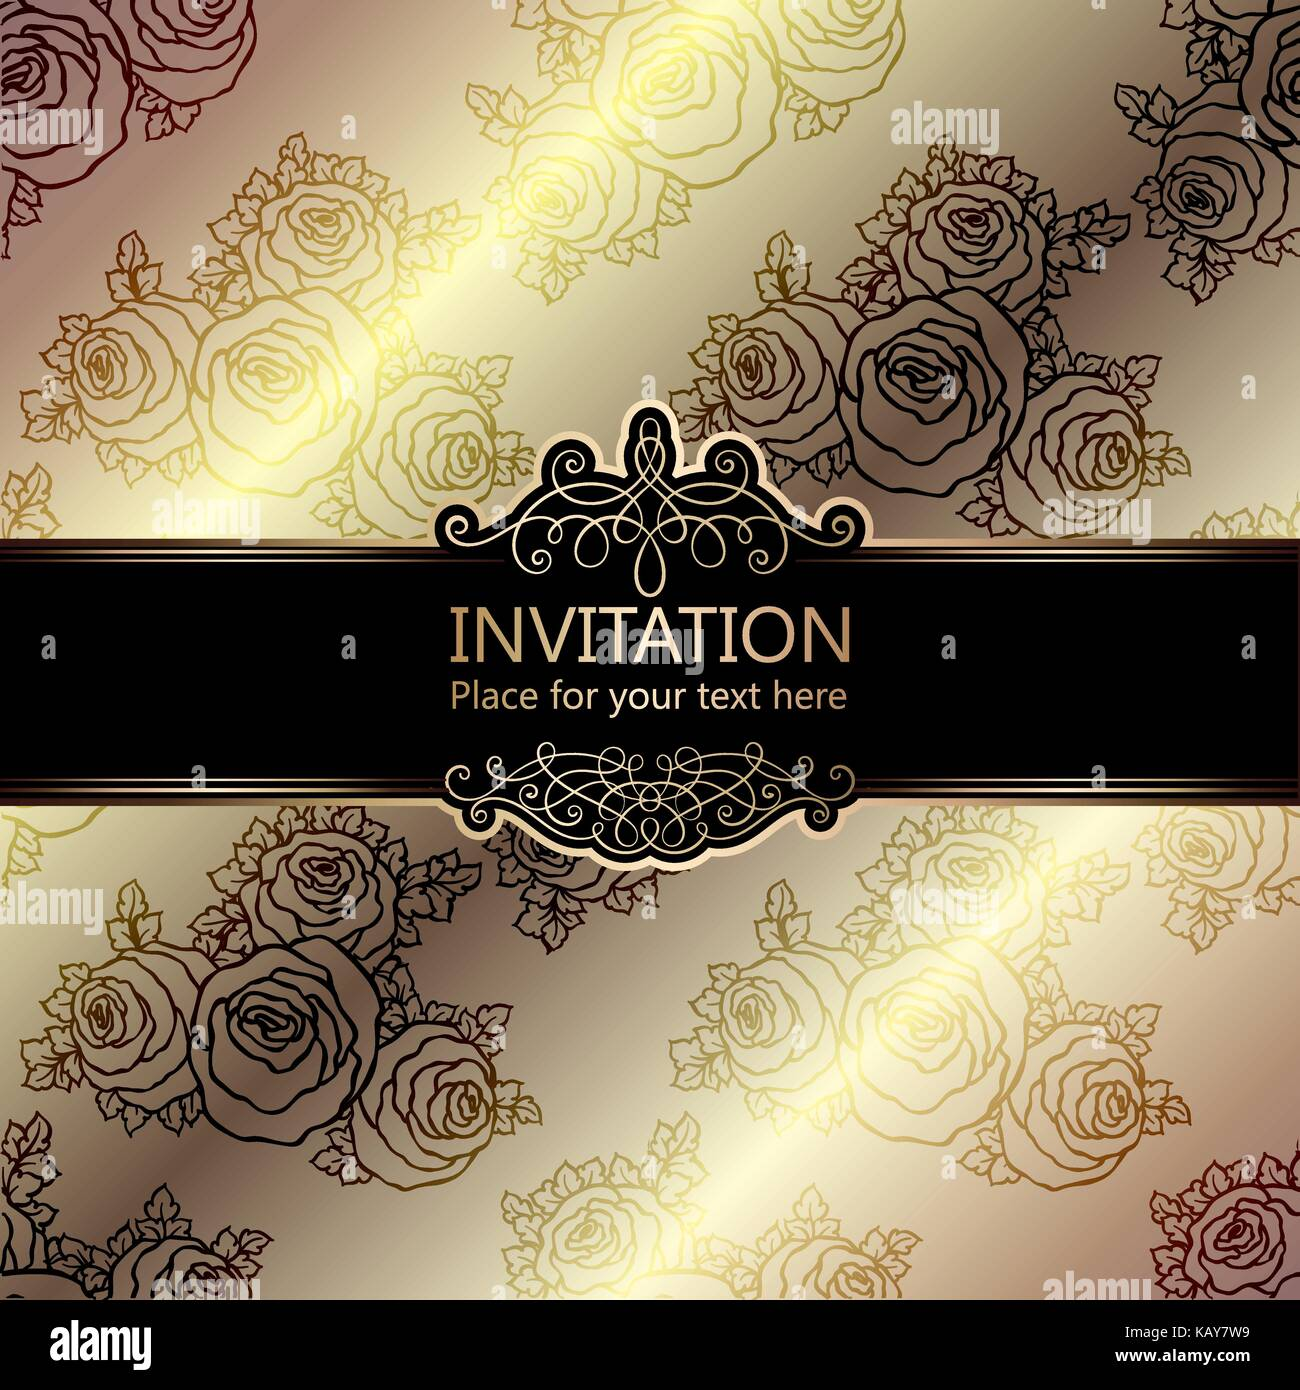 Abstract Background With Roses Luxury Beige And Gold Vintage Frame